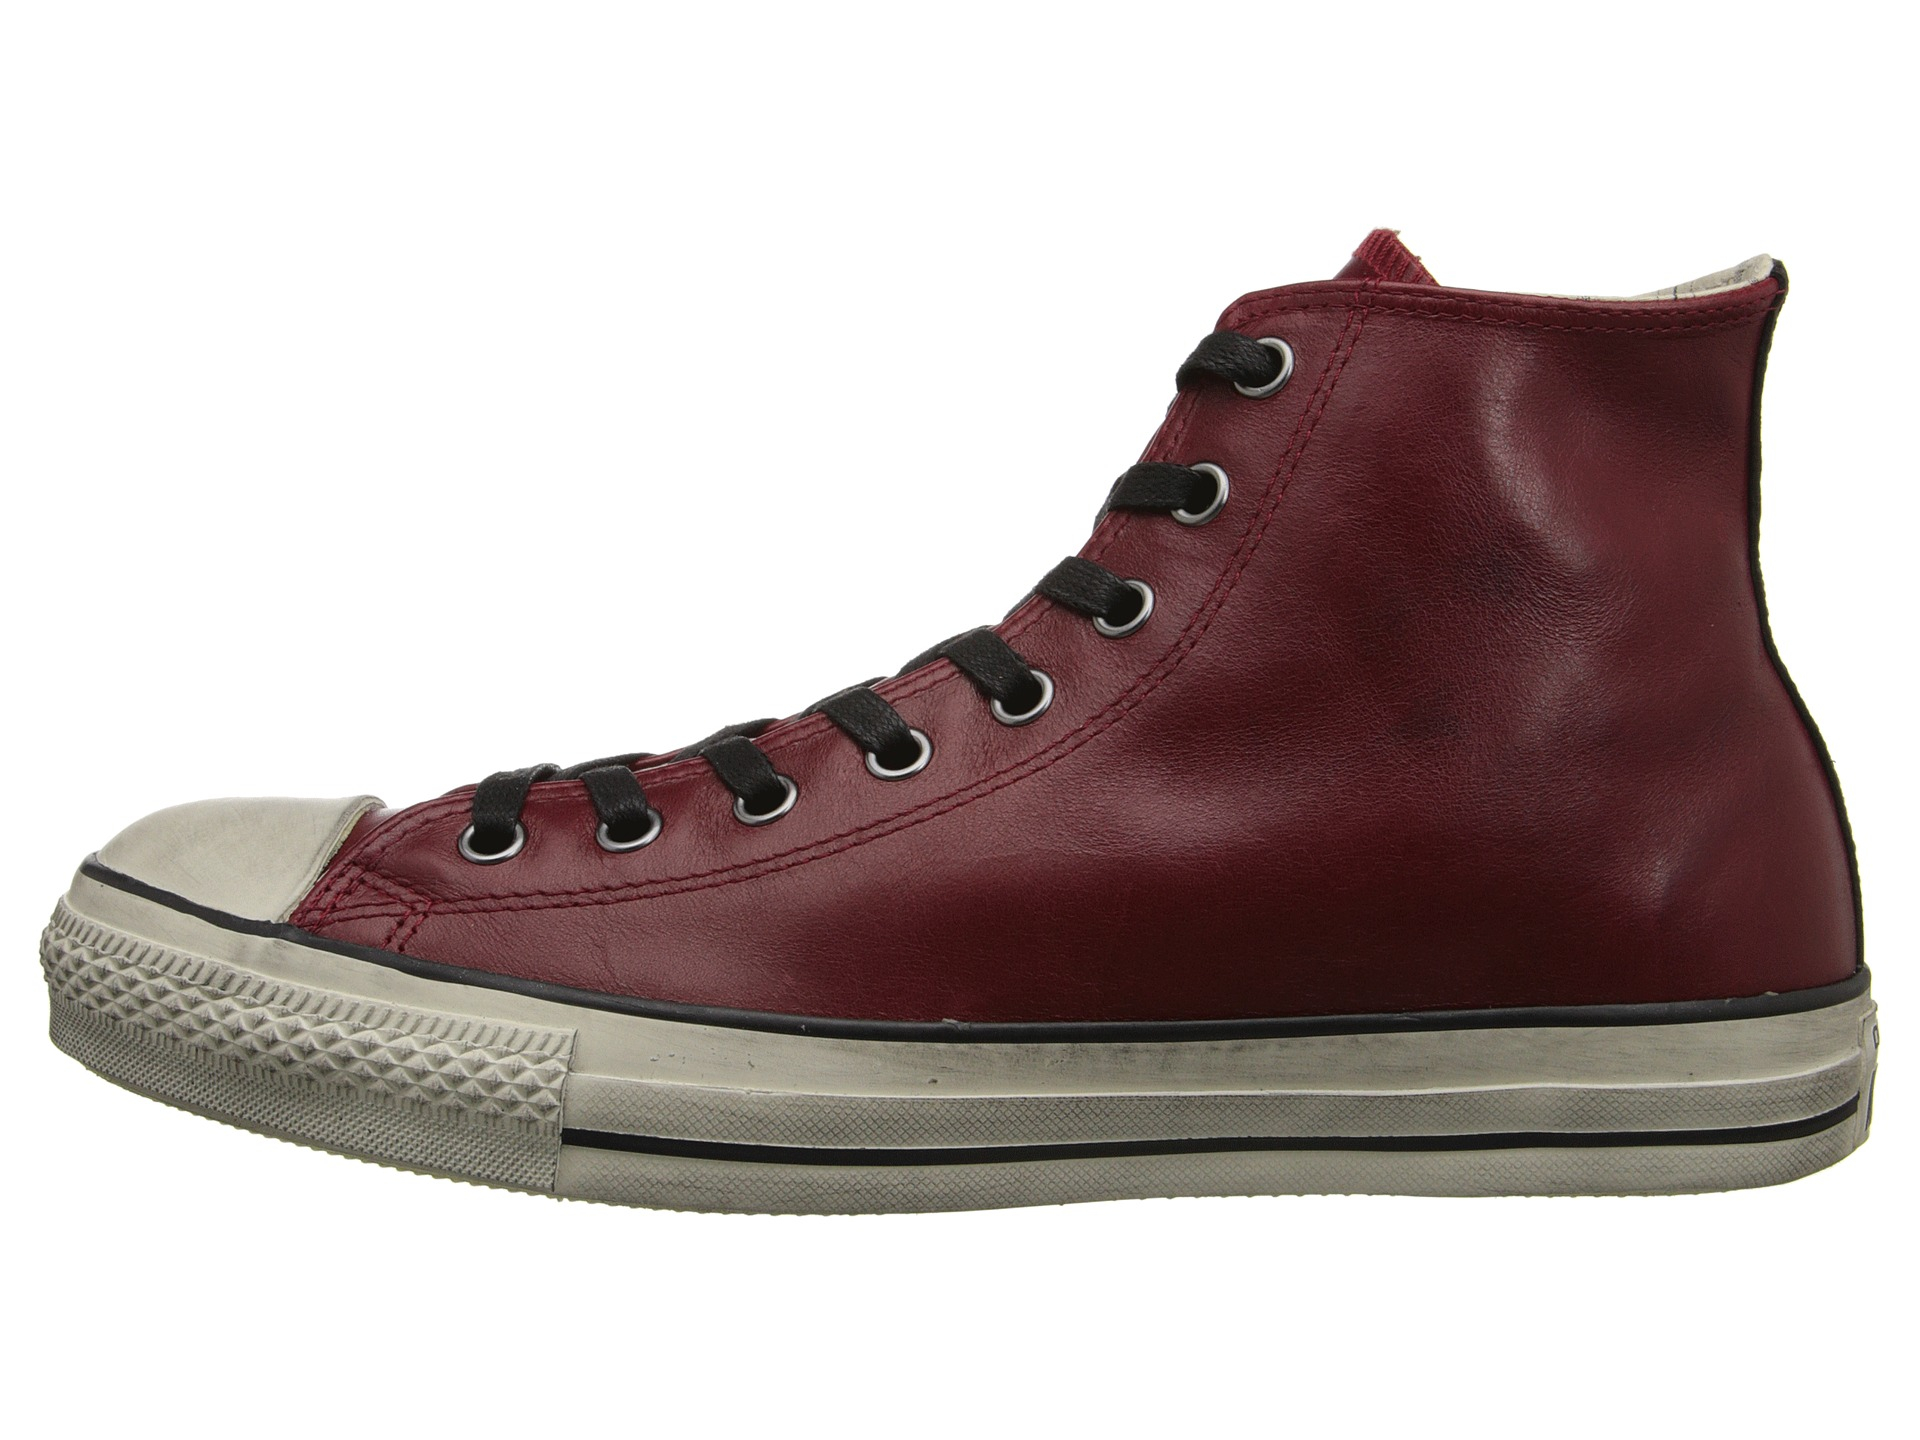 f1e1ad01bfb7 Lyst - Converse Chuck Taylor All Star Burnished Leather in Red